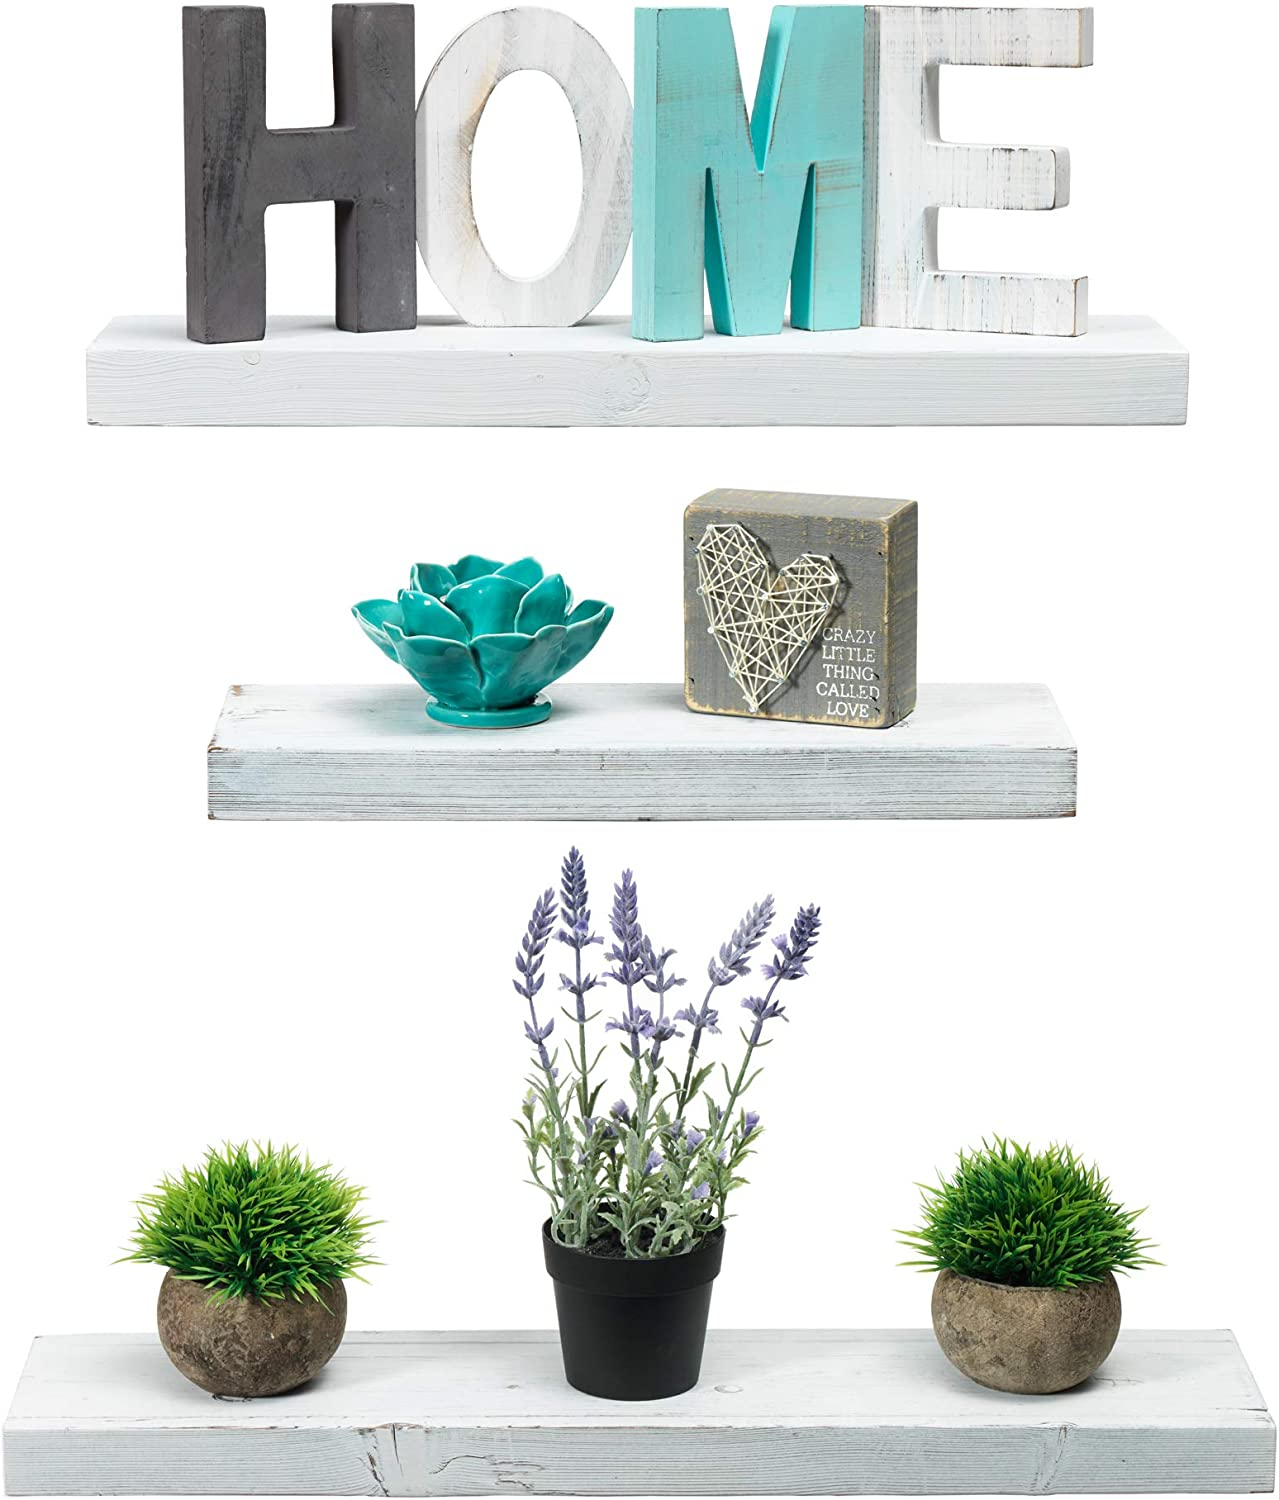 Rustic Farmhouse 3 Tier Floating Wood Shelf - Floating Wall Shelves (Set of 3), Hardware and Fasteners Included (White, 3 Tier)